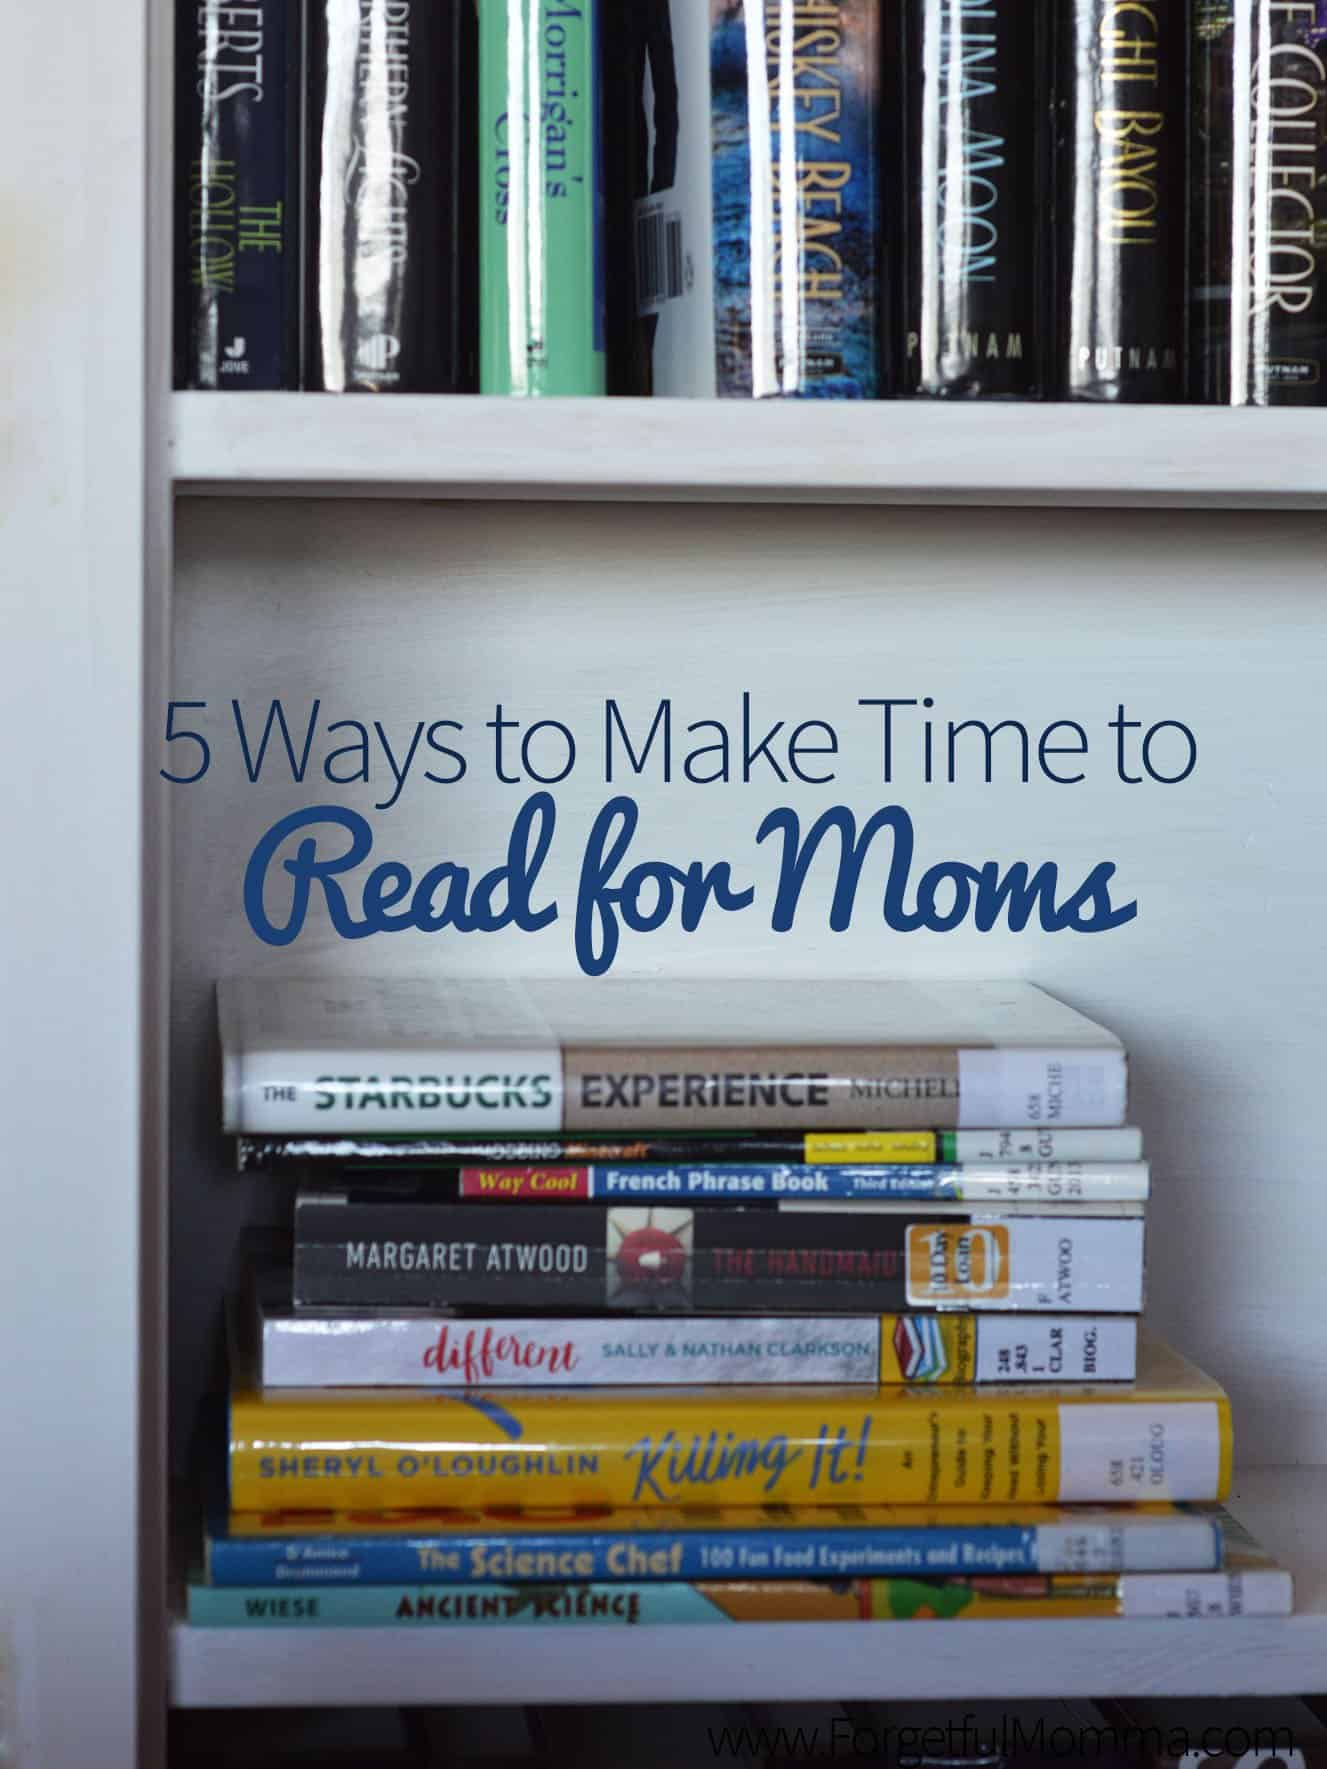 5 Ways to Make Time to Read for Moms